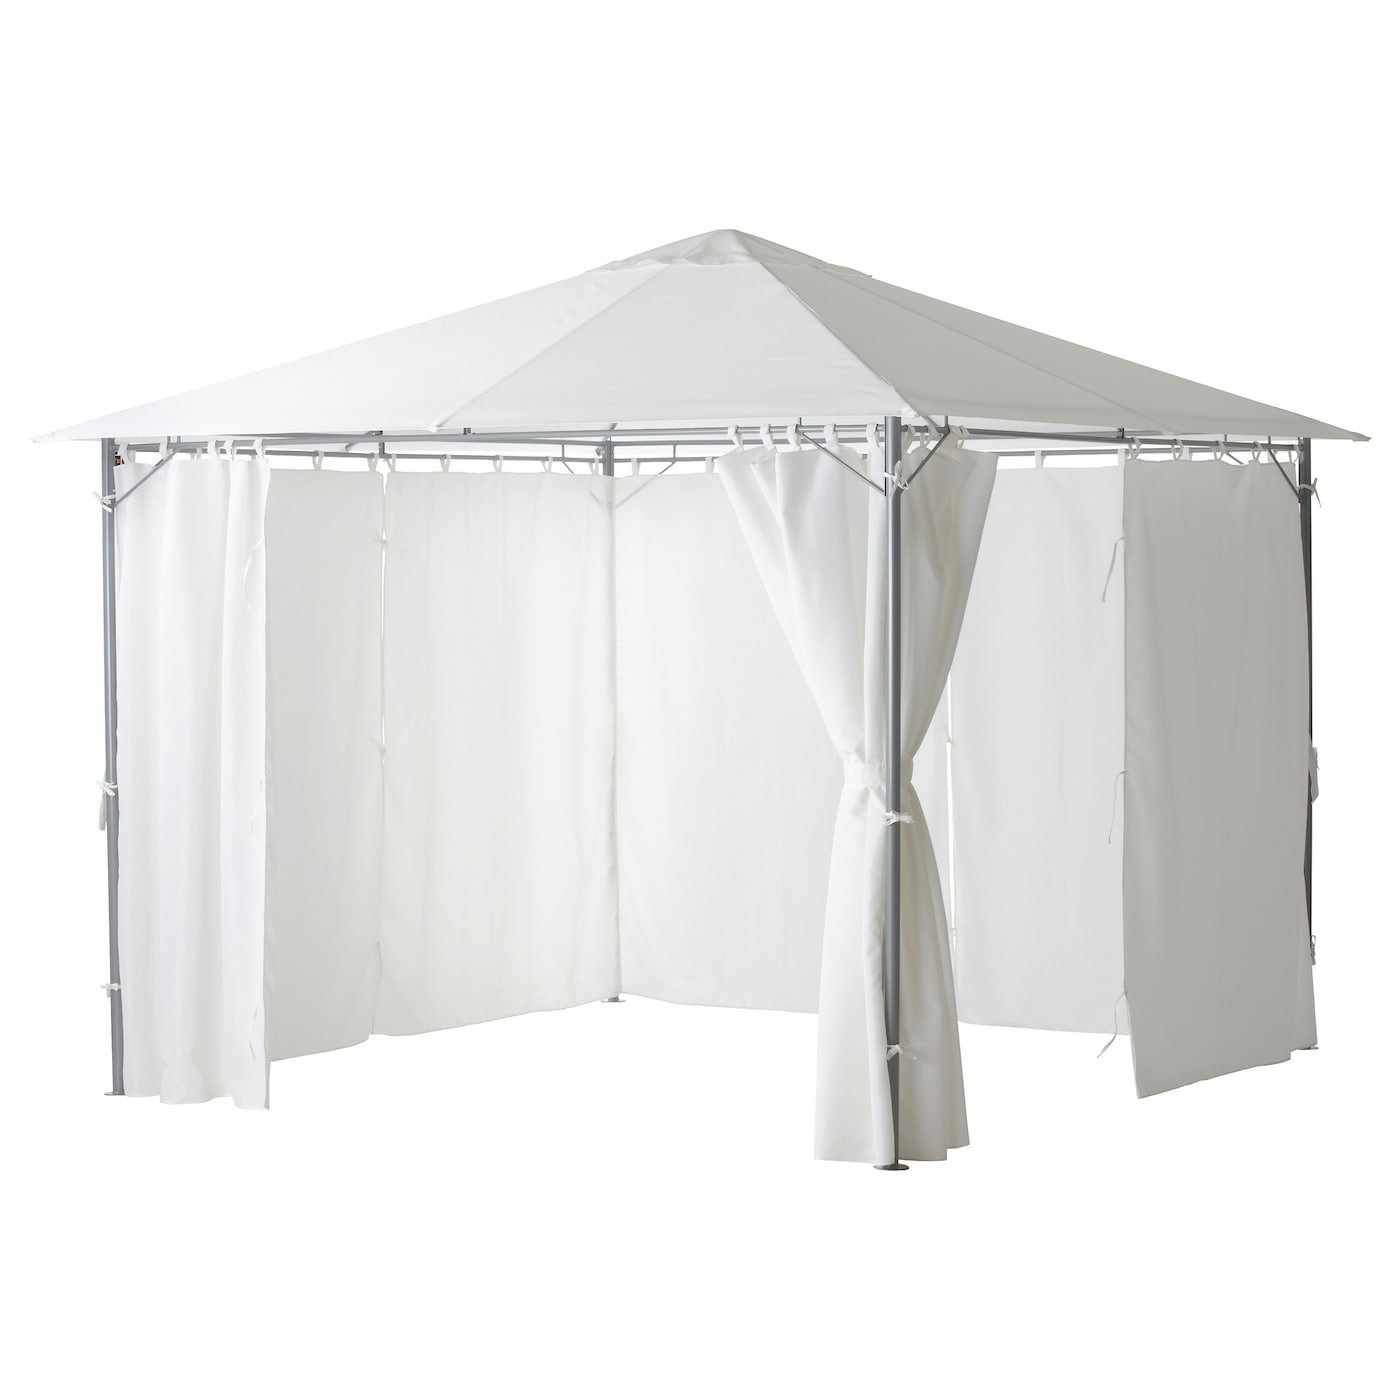 IKEA KARLSO Gazebo With Curtains The Air Vent Reduces Wind Pressure And Allows Heat To Circulate